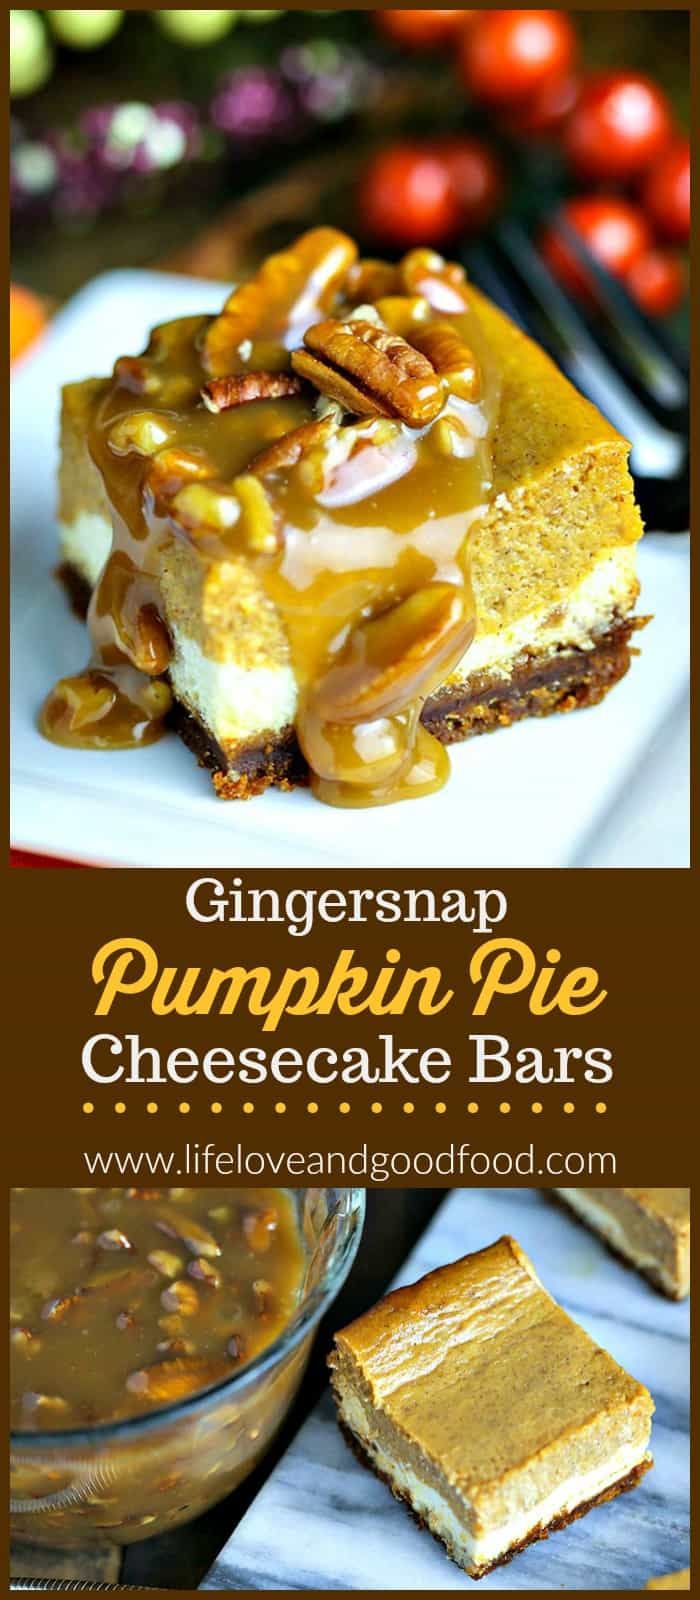 Gingersnap Pumpkin Pie Cheesecake Bars start with layers of pumpkin pie and creamy cheesecake on a crispy gingersnap crust and are finished off with a decadent caramel pecan sauce. #dessert #cheesecake #pumpkin